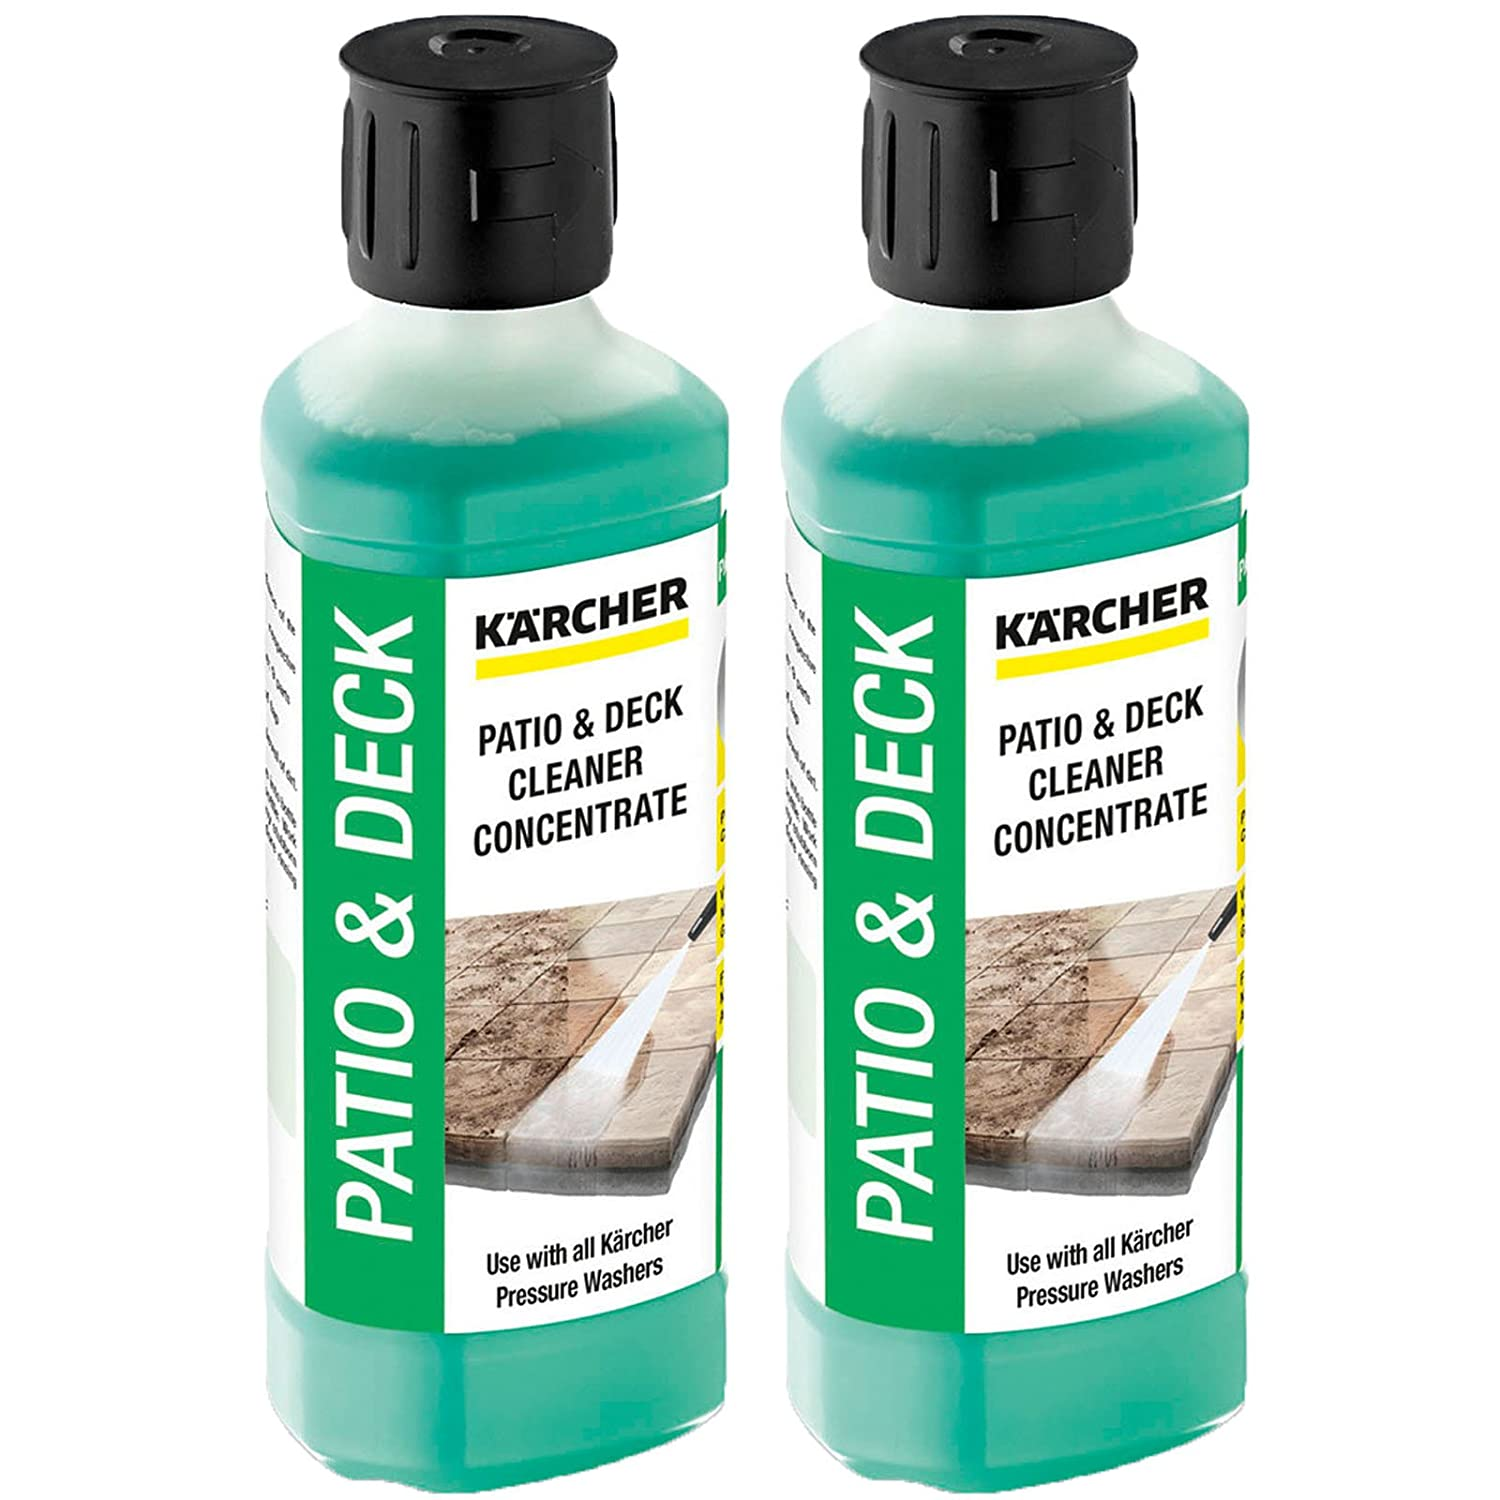 KARCHER Genuine Patio + Deck Pressure Washer Cleaner Detergent Fluid - Mixes up to 5L (Pack of 2)